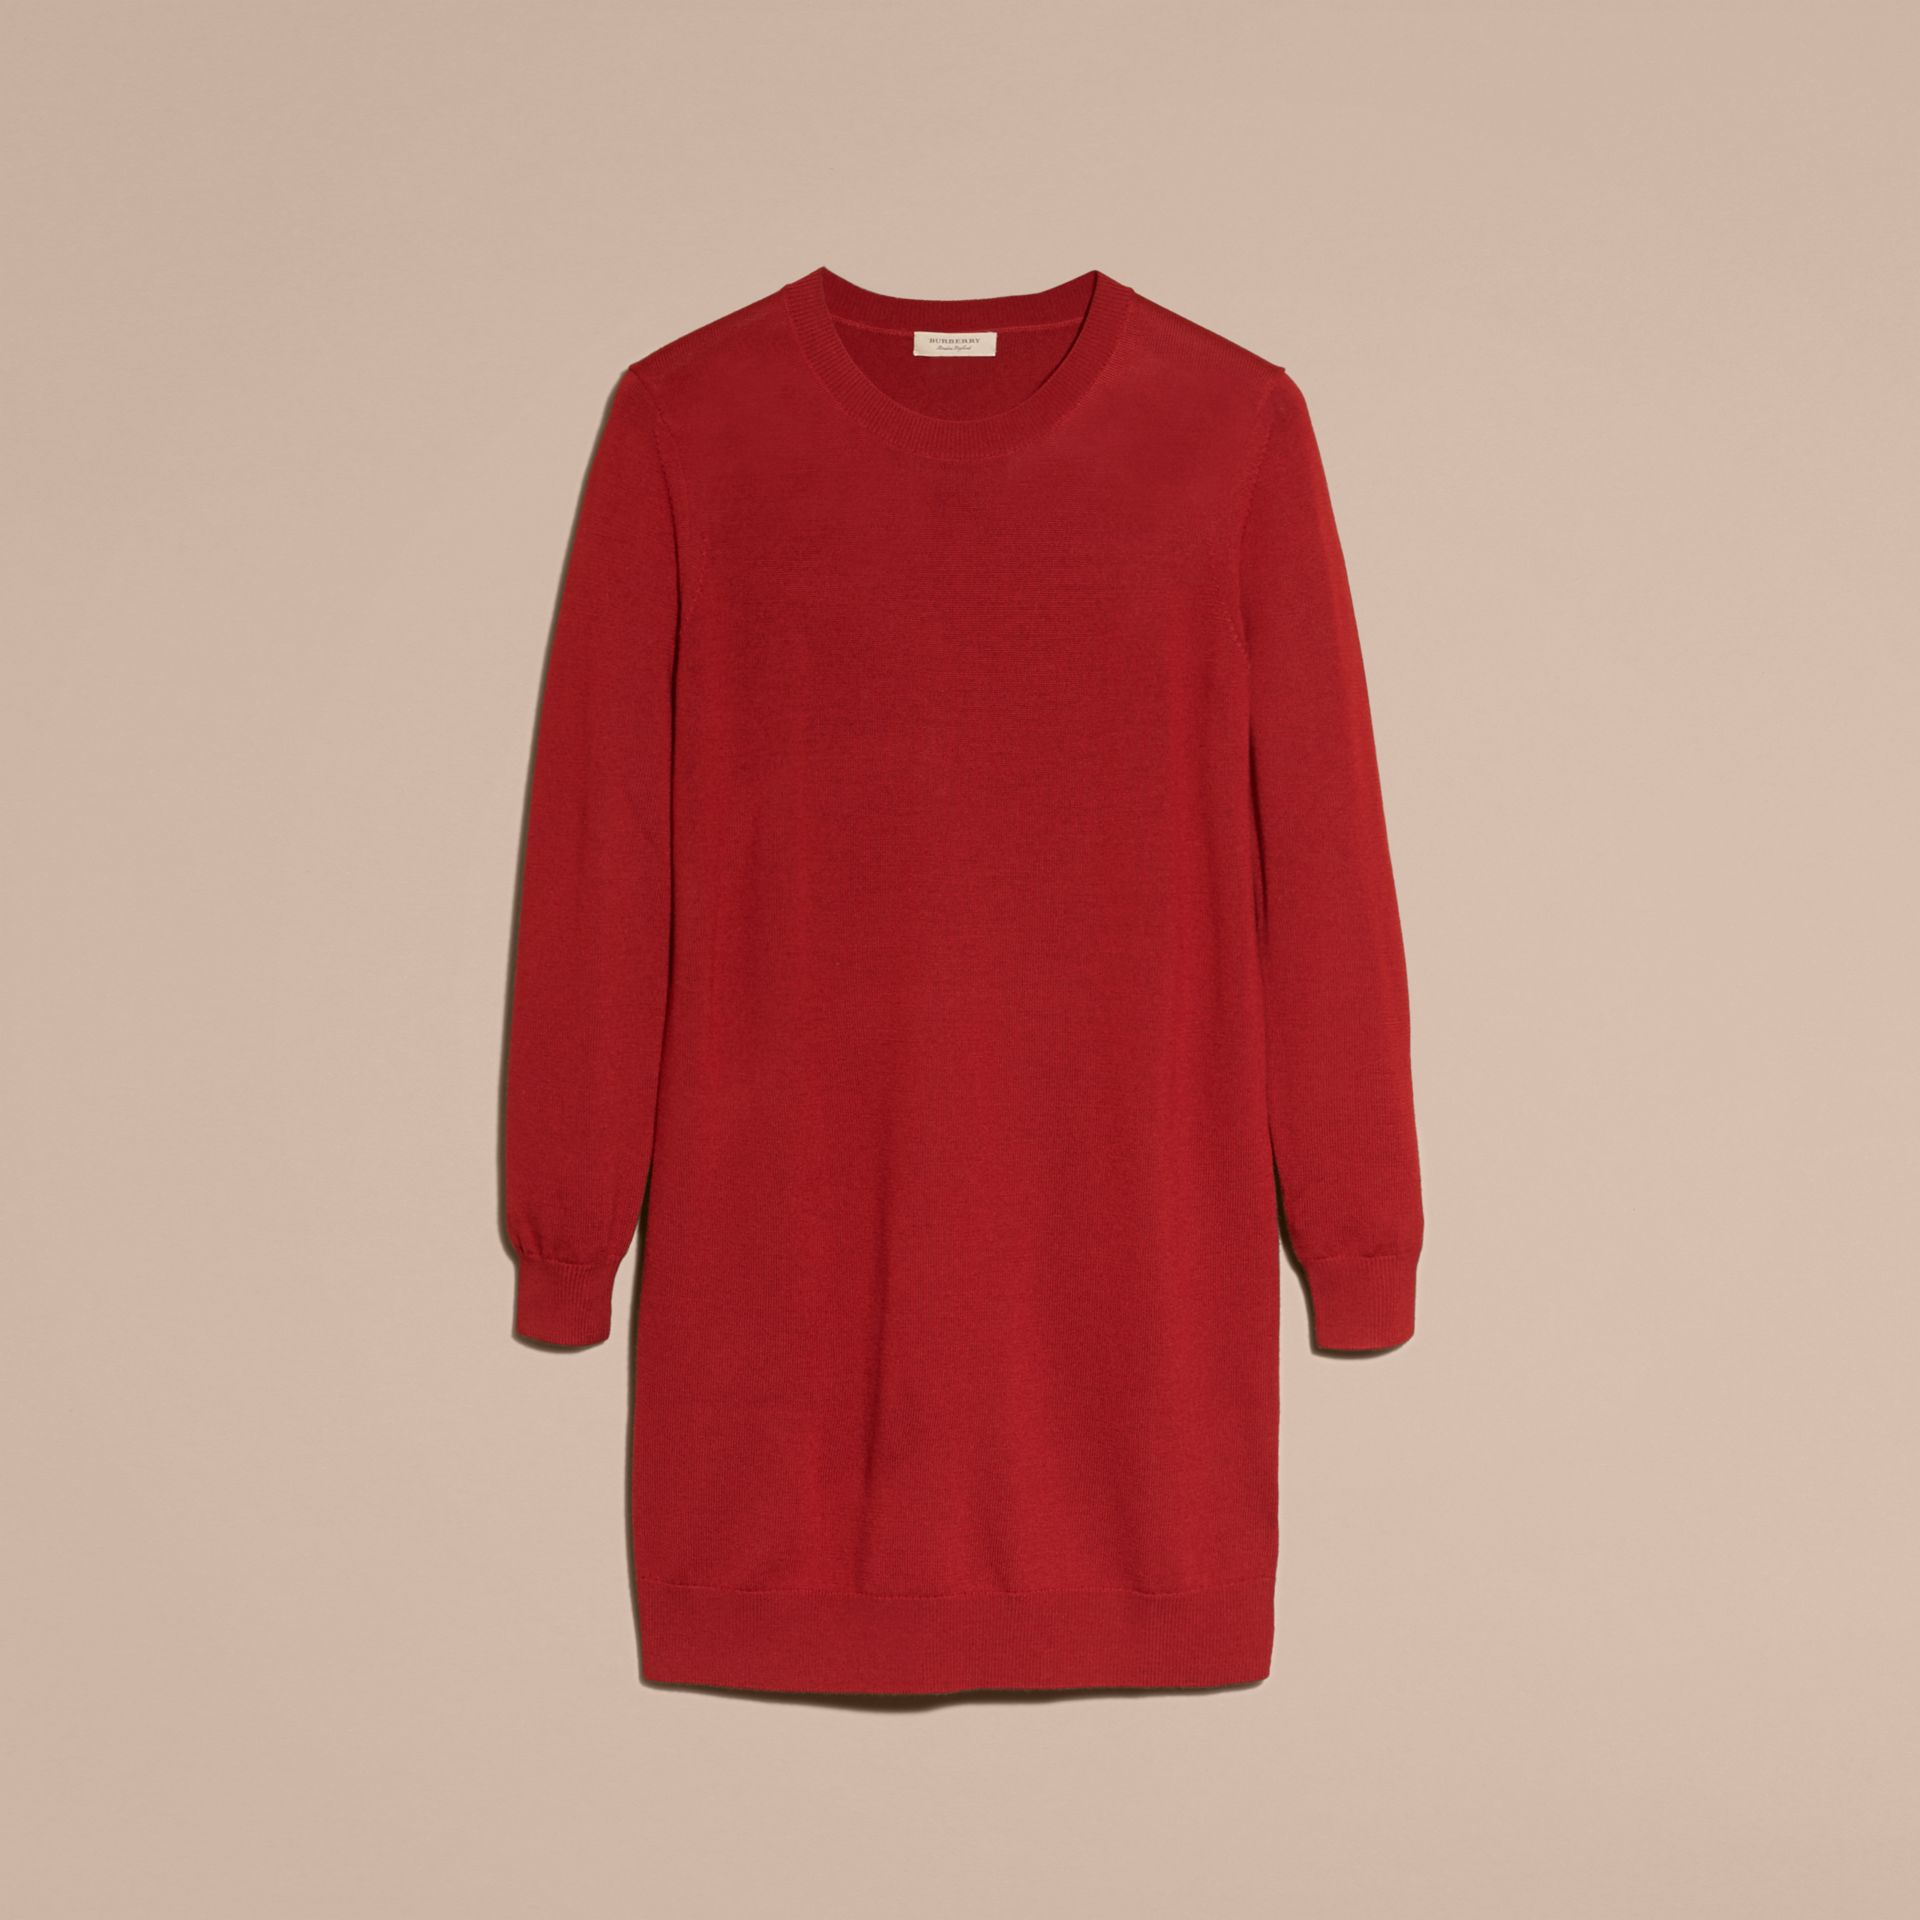 Check Elbow Detail Merino Wool Sweater Dress Parade Red - gallery image 4